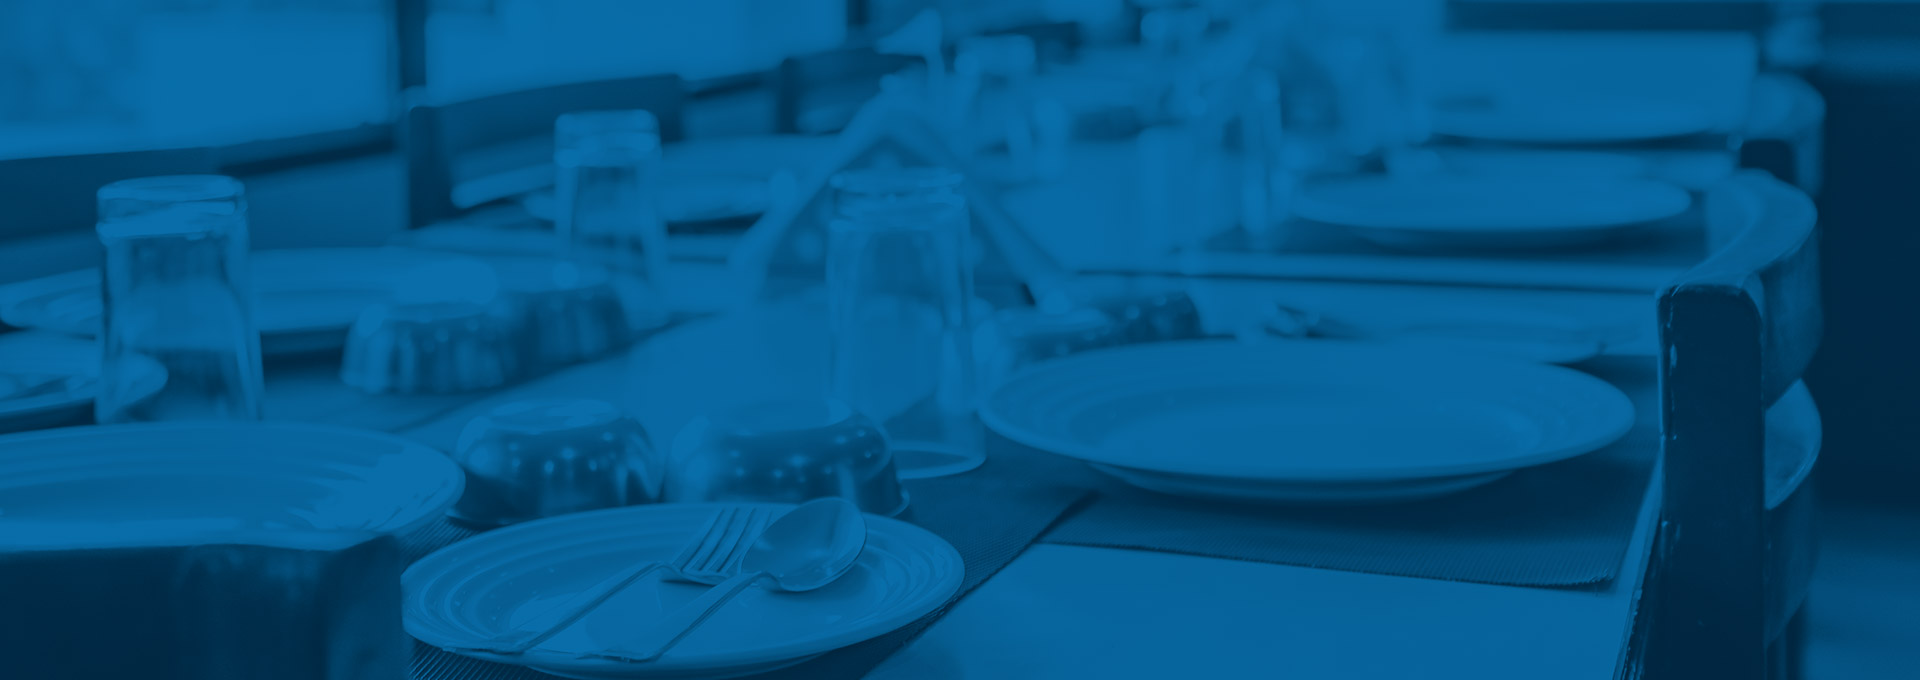 Hotel Sustainability & Waste Management: Reducing Food, Water and Plastic Waste